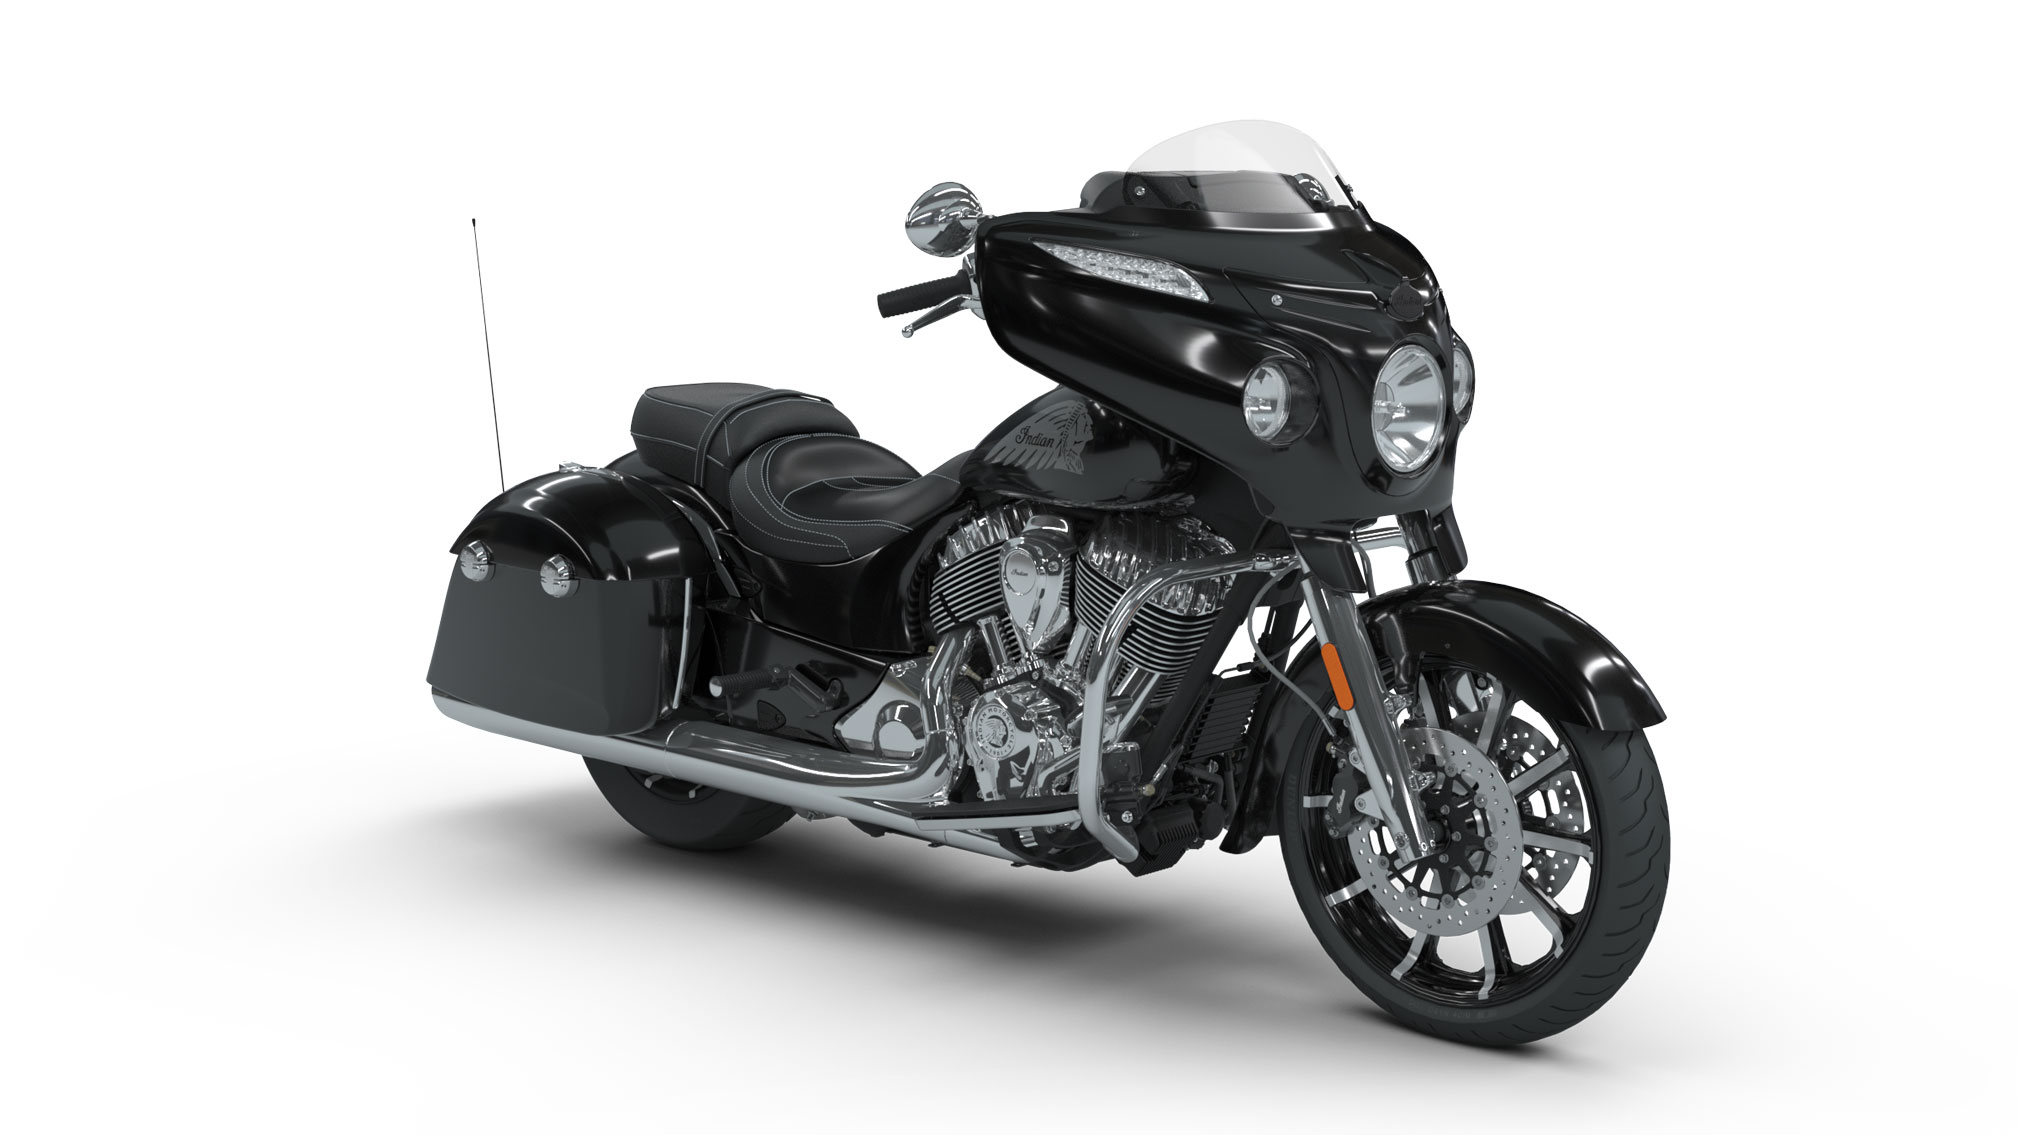 2018 Indian Chieftain Limited Review Totalmotorcycle